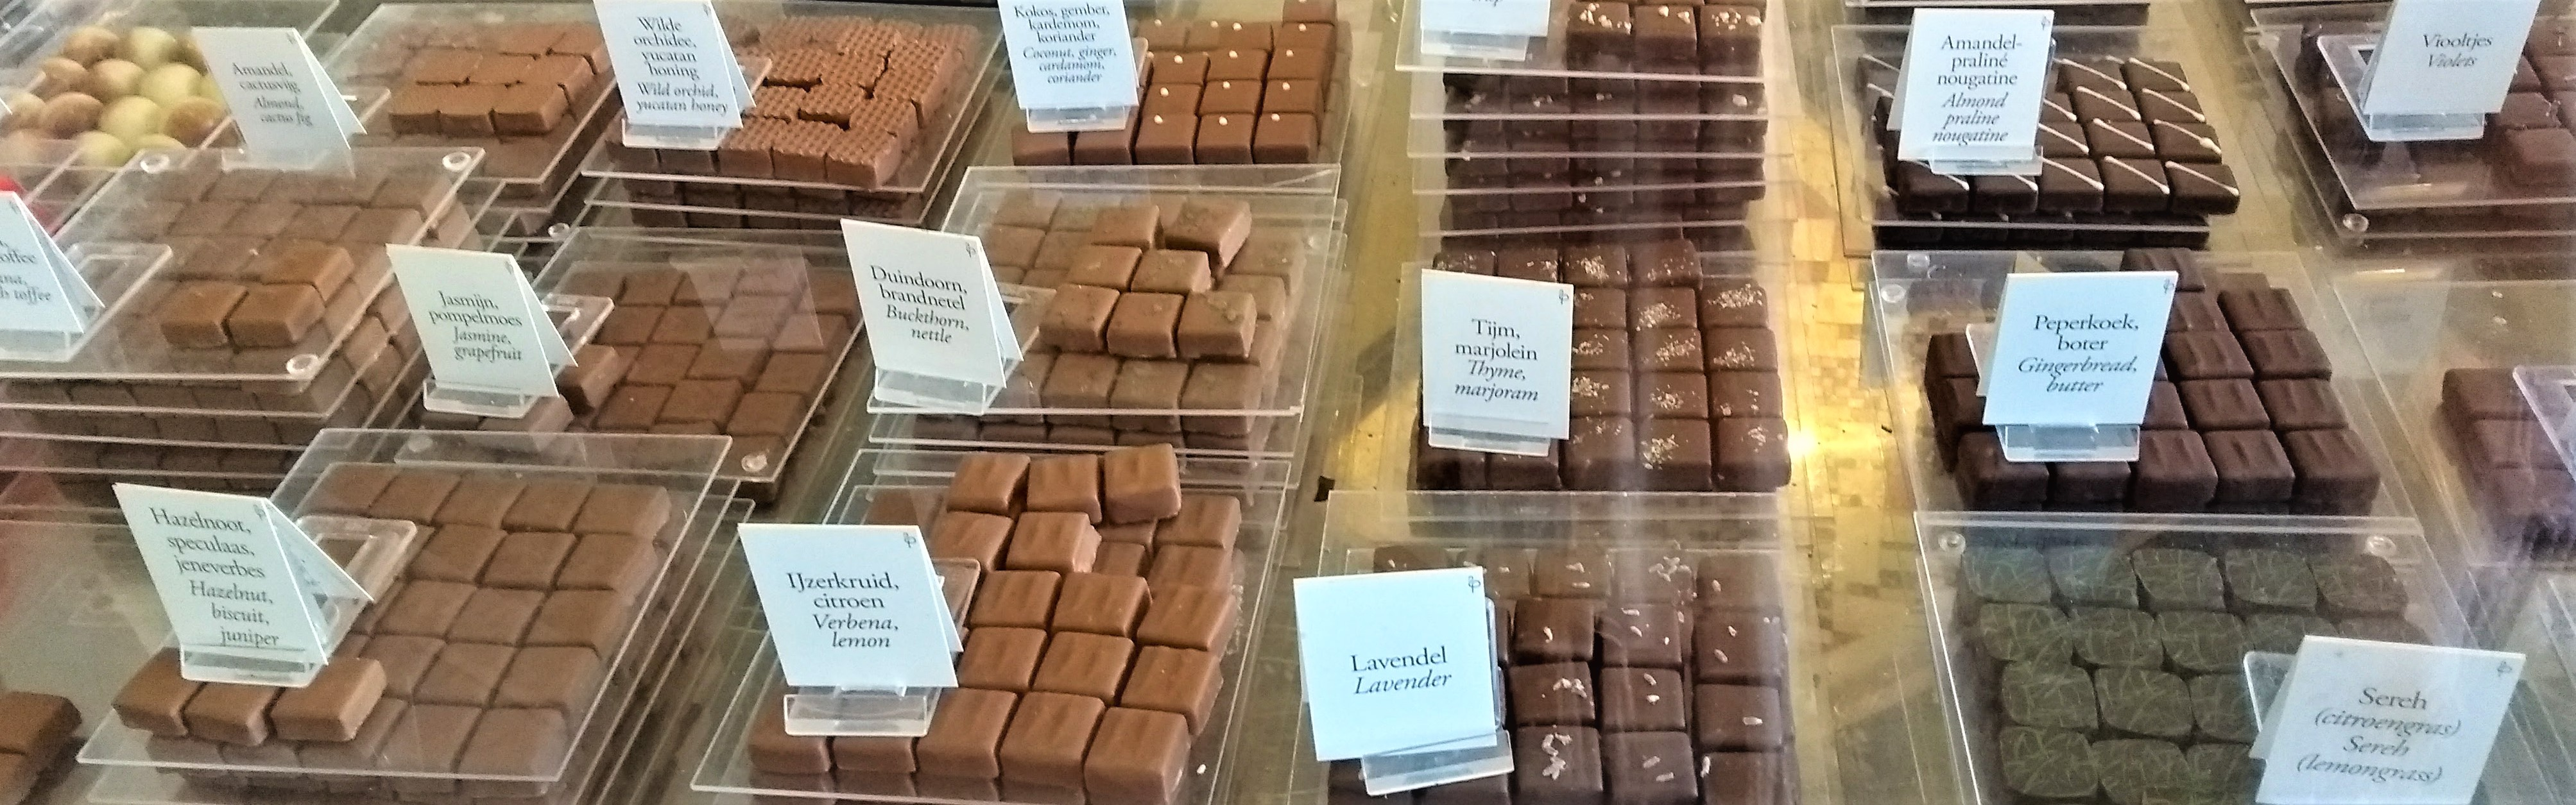 Chocolate and the City: chocoladewinkels in Den Haag